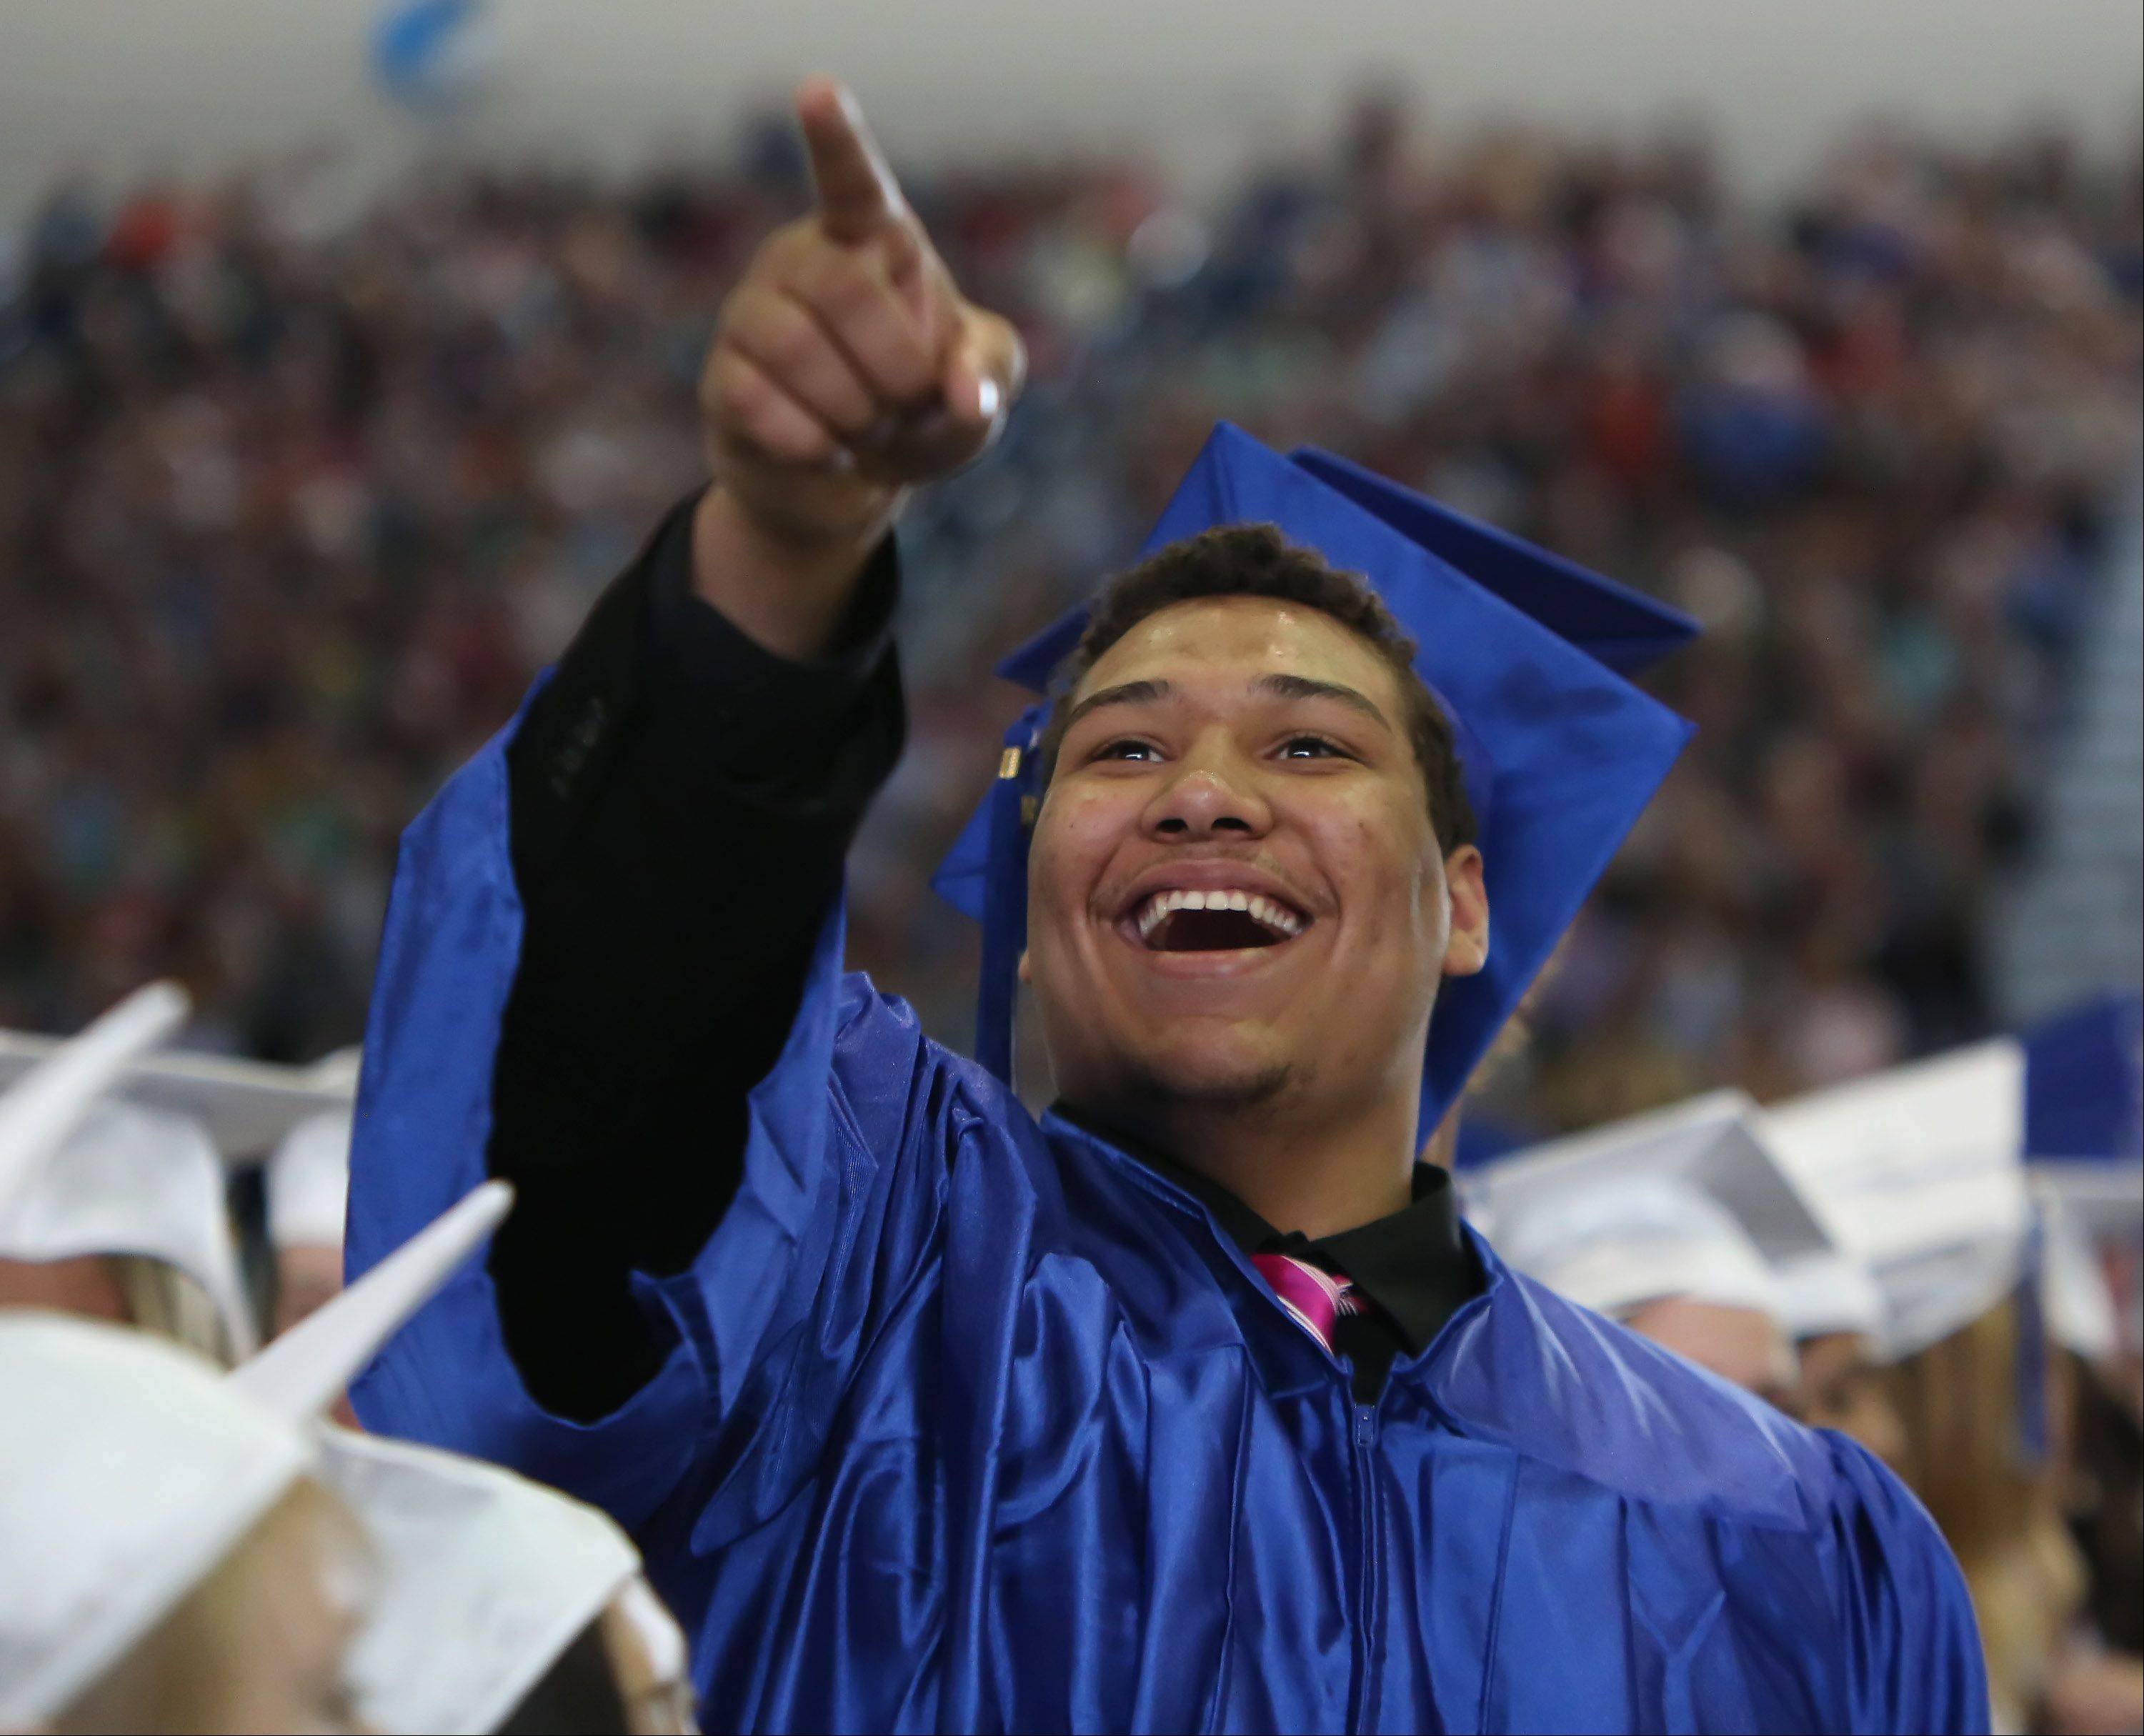 Apollo Millon smiles as he points up to family members during the Lake Zurich High School graduation ceremony on Sunday. There were 542 seniors graduating this year at the school.